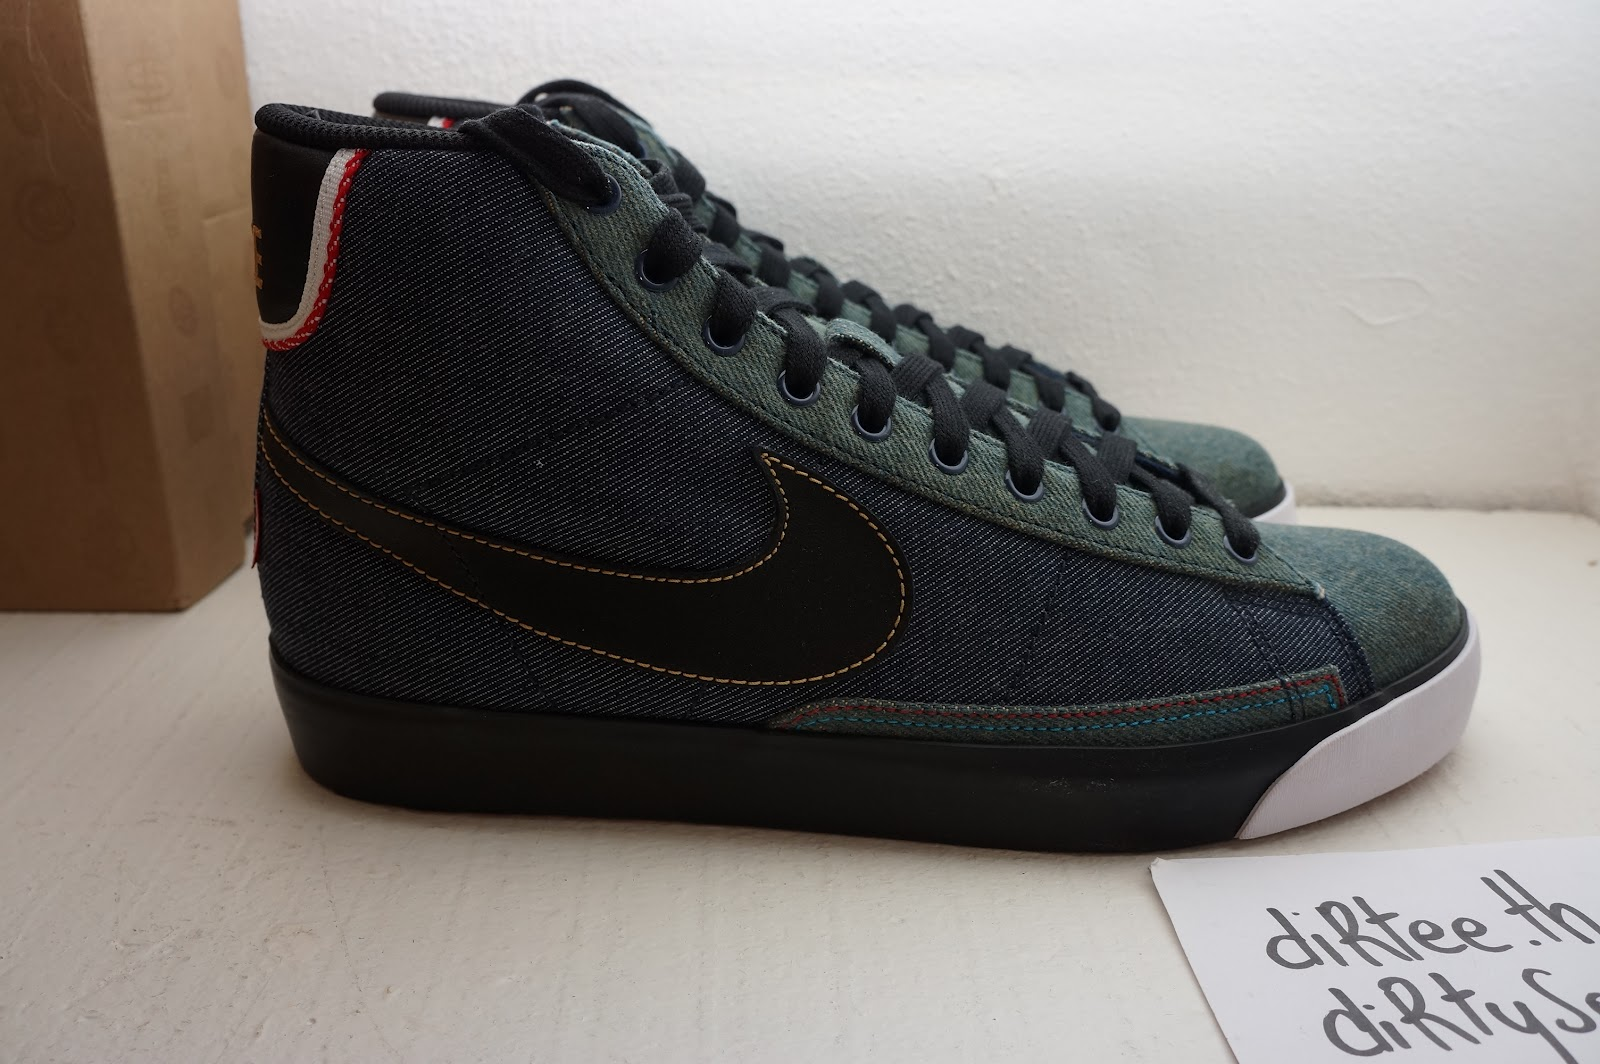 check out 24a81 821d5 NIKE - Blazer Mid Premium ND QuickStrike - Selvedge Denim Pack 366962-401